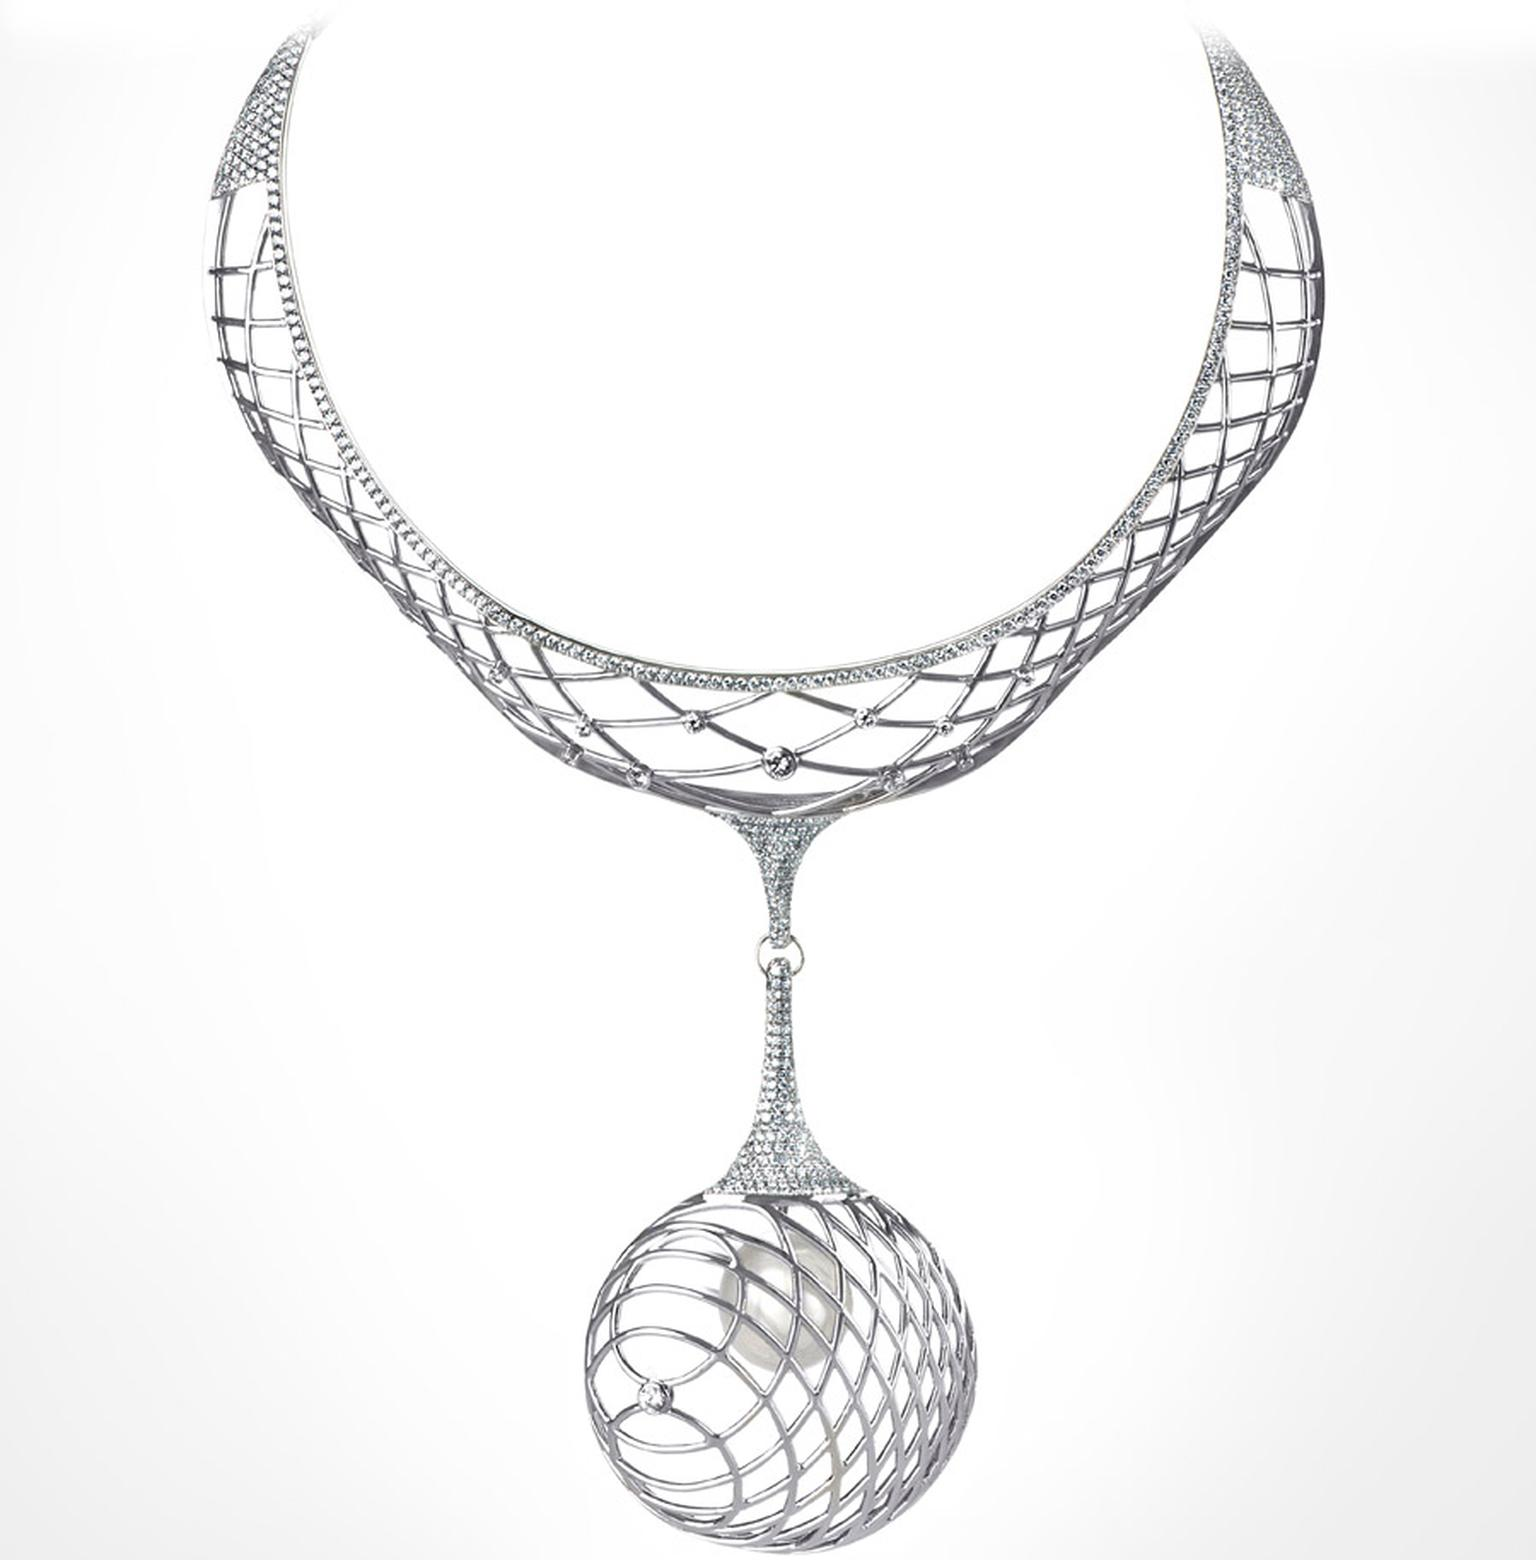 The-Palladium-Fine-Jewellery--Collection-by-Lara-Bohinc-Choker-MAIN-PIC.jpg